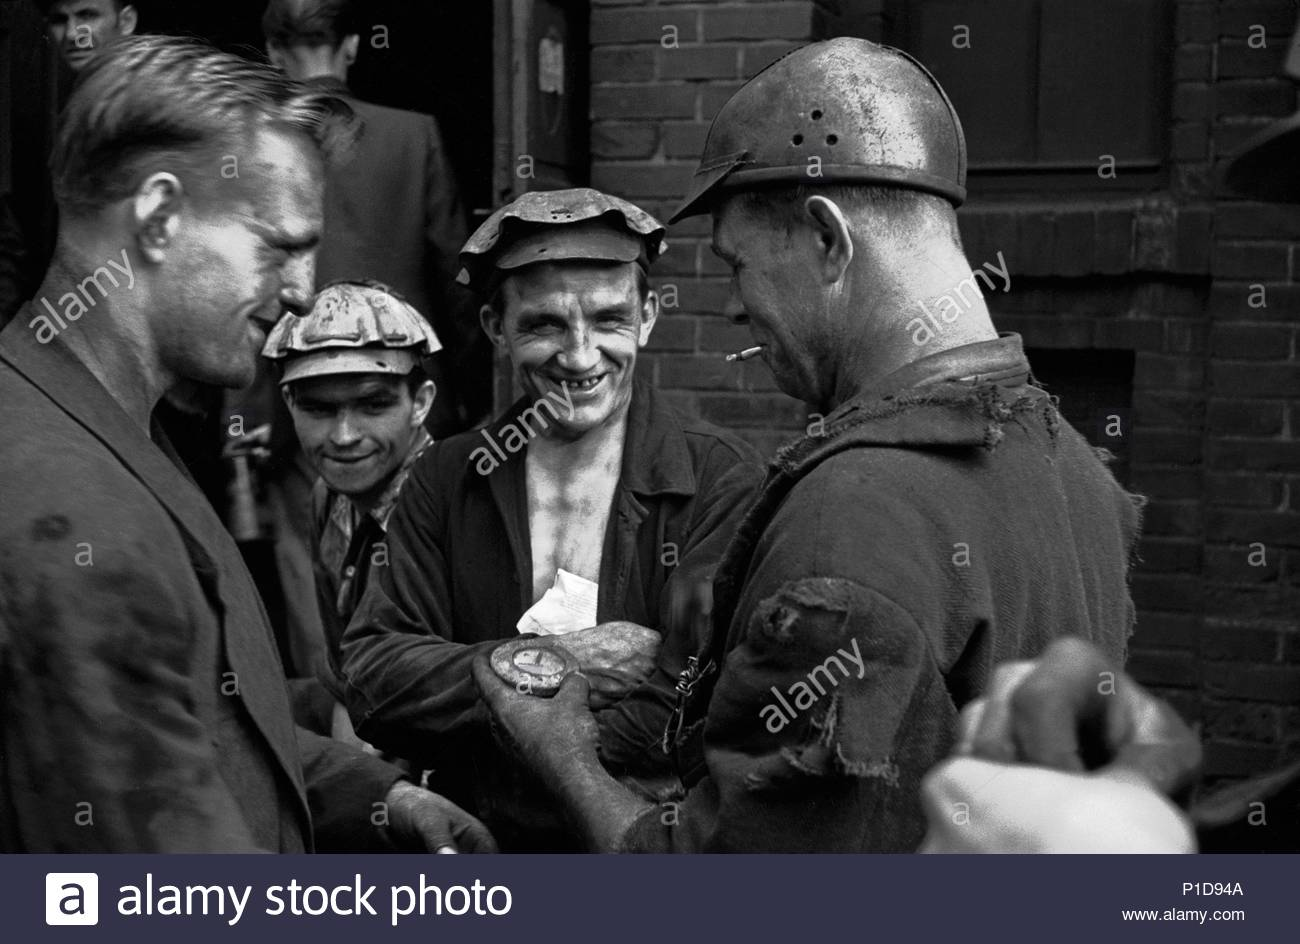 A monthly meeting at the Hlubina mine in Ostrava, Czechoslovakia's coal pot.Production and the next month's work-plan are discussed.During question time after the meeting, workers could lodge complaints. Hlubina,Czechoslovakia,1956. Author: Erich Lessing (b. 1923). Location: Hlubina mine, Ostrava, Czech Republic. - Stock Image